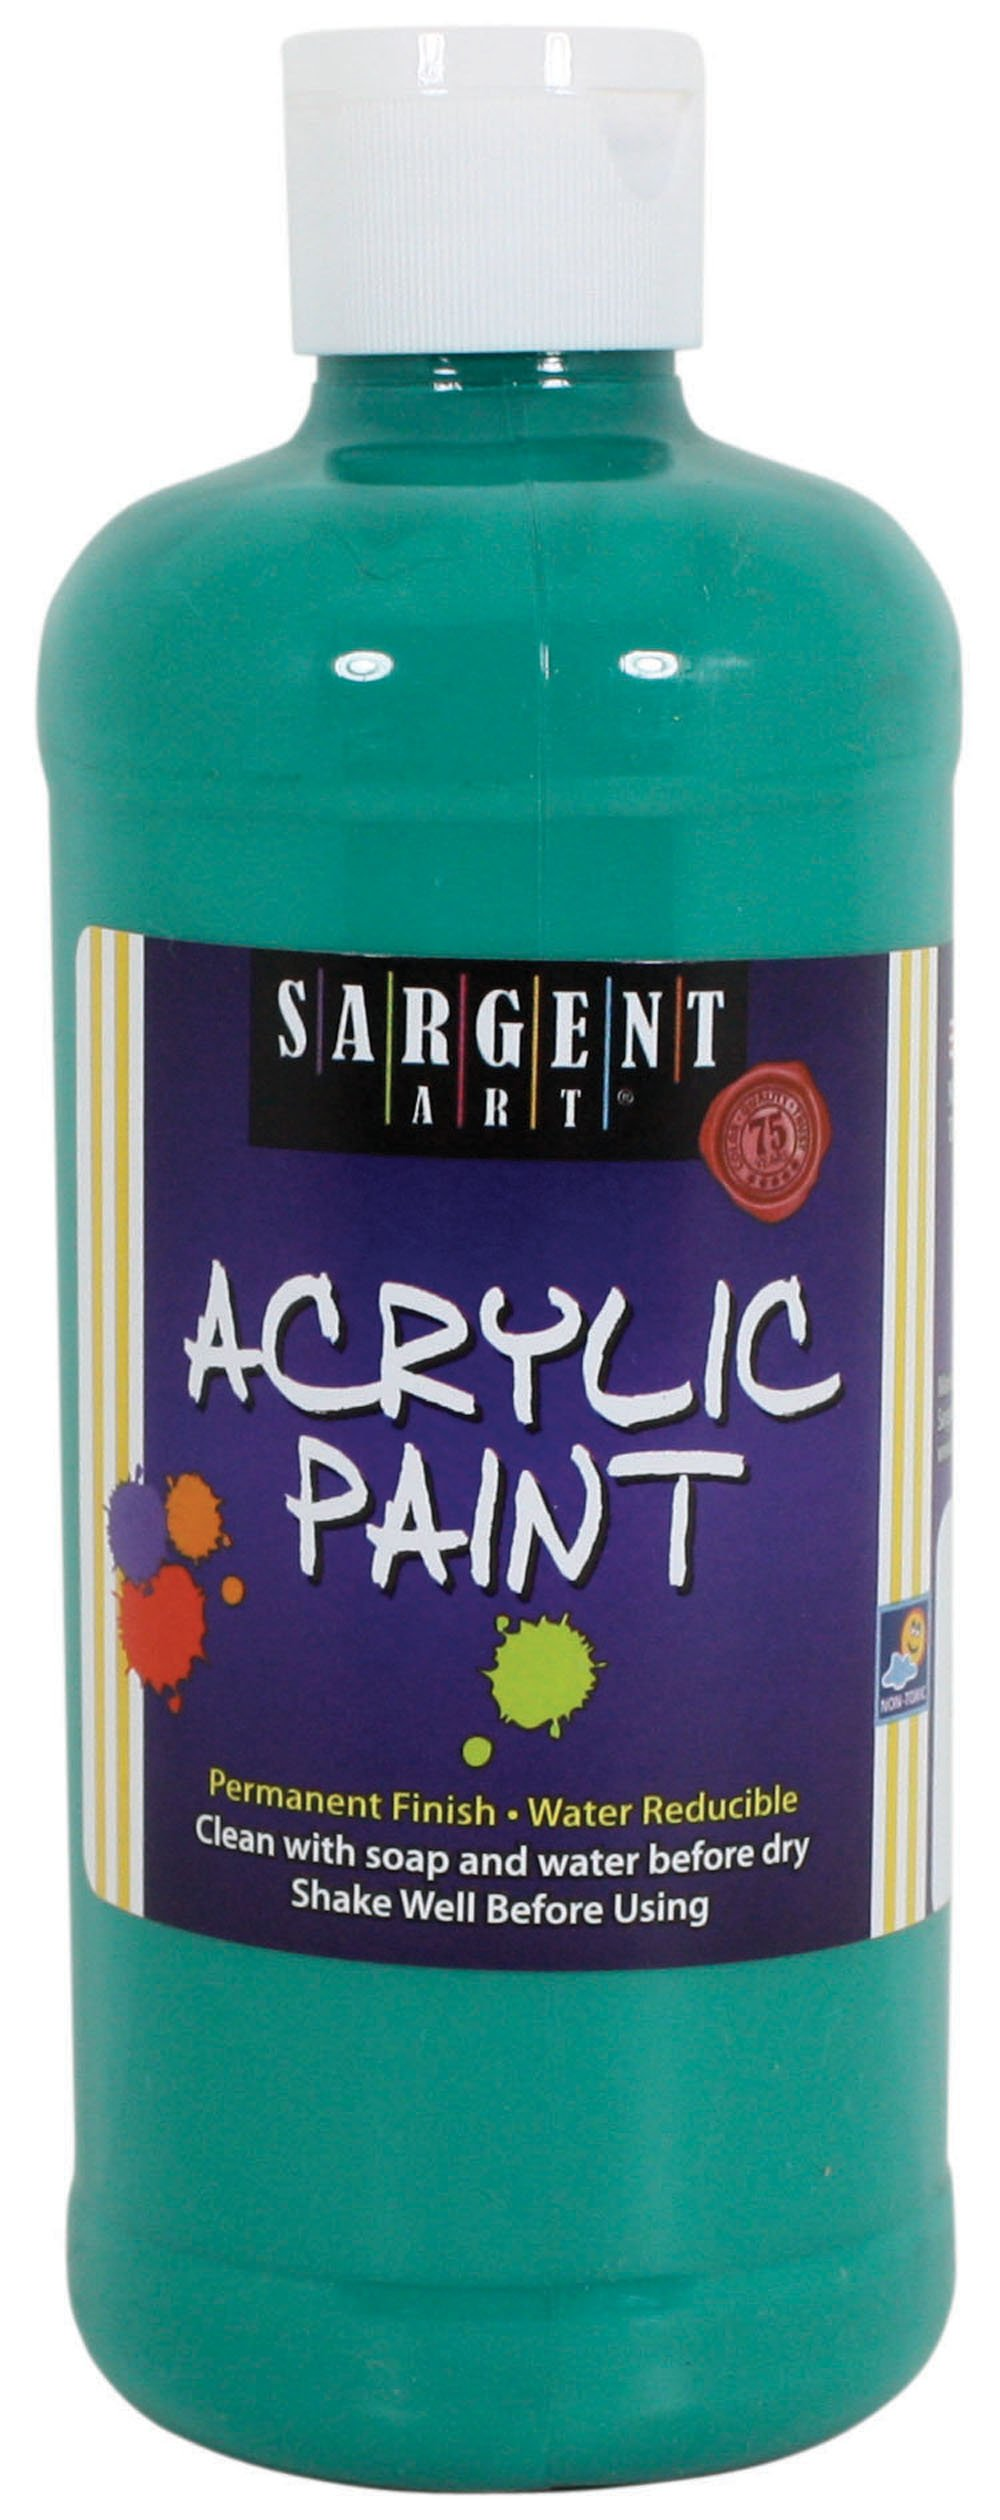 Sargent Art 24-2474 16-Ounce Acrylic Paint, Phthalo Green